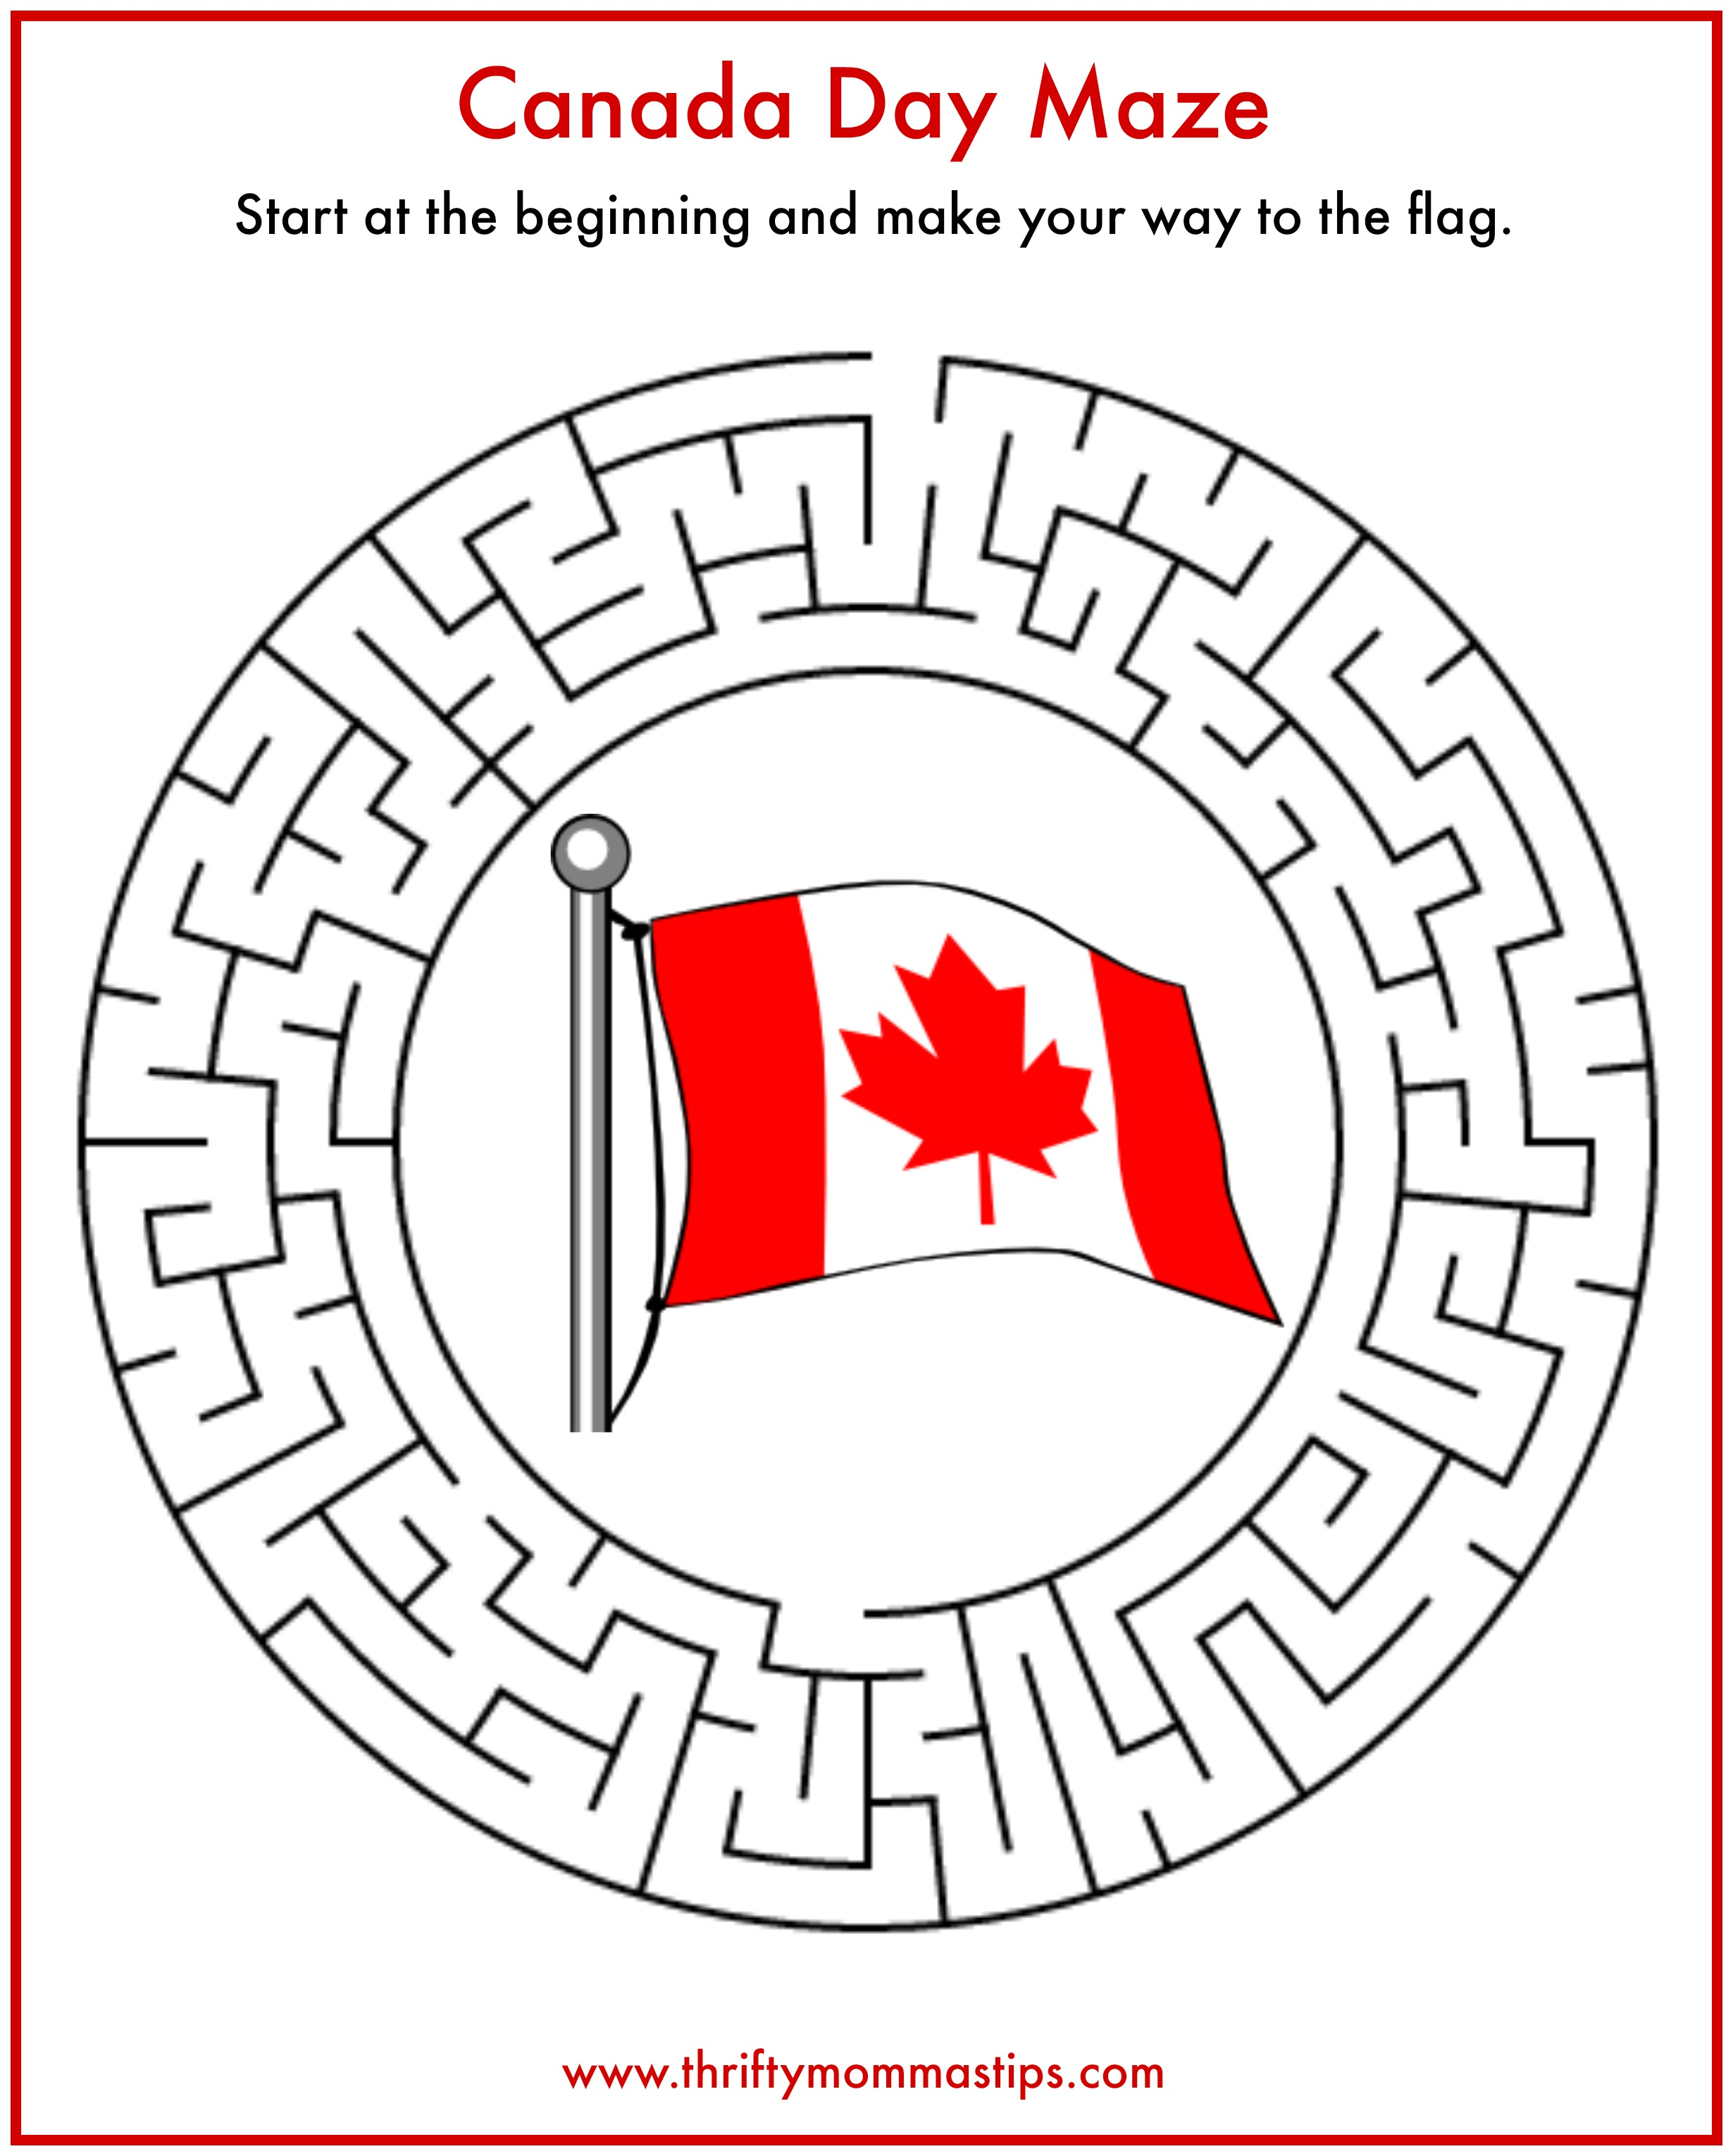 Fun Easy Canada Day Maze